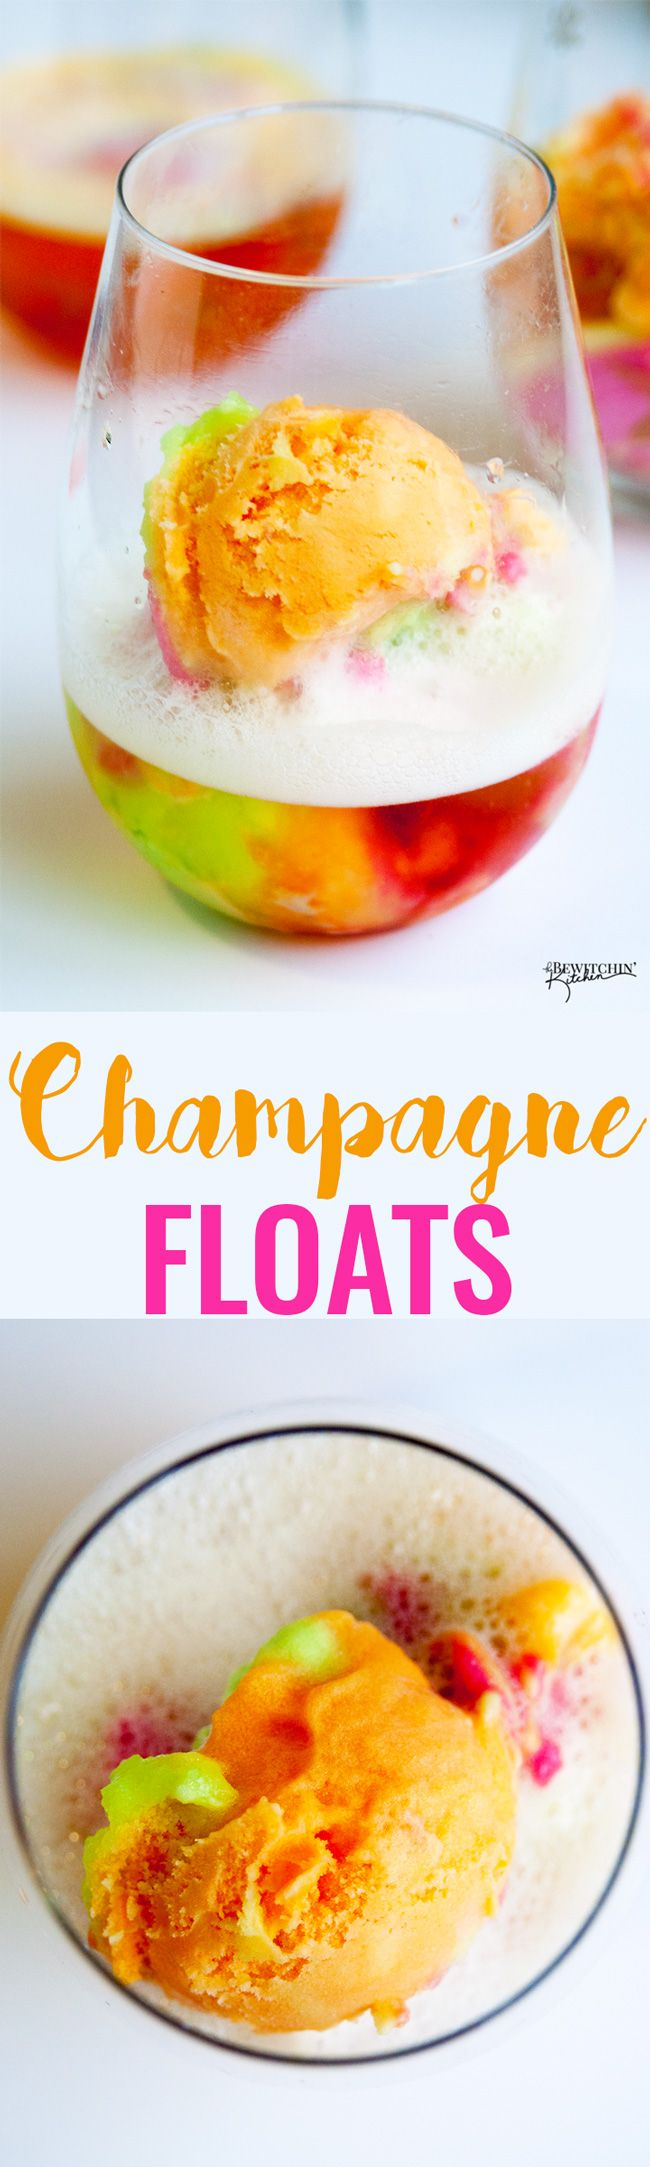 Champagne floats - this boozy dessert is a hit a for summer bbqs, brunches and New Years Eve parties. Sparkling wine and sherbert makes a delicious combination in this adult float.   thebewitchinkitchen.com